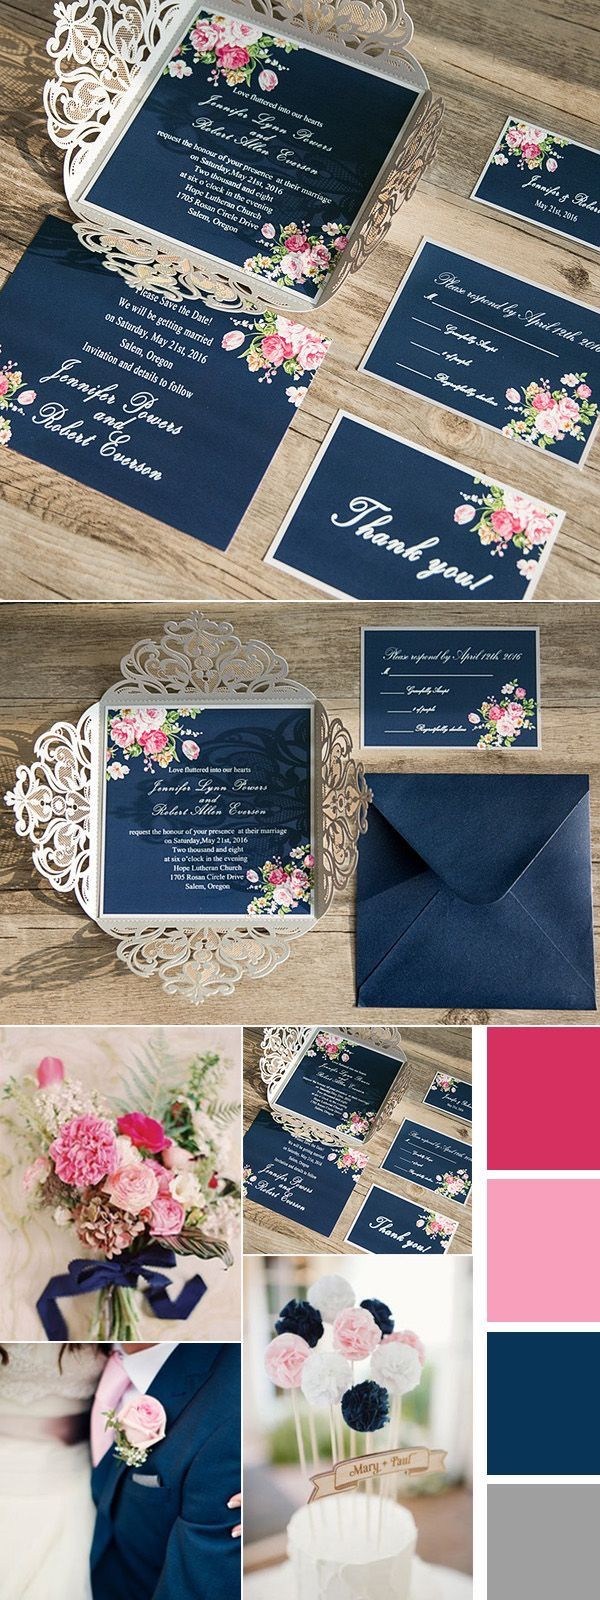 best invitation images on pinterest invitation cards card